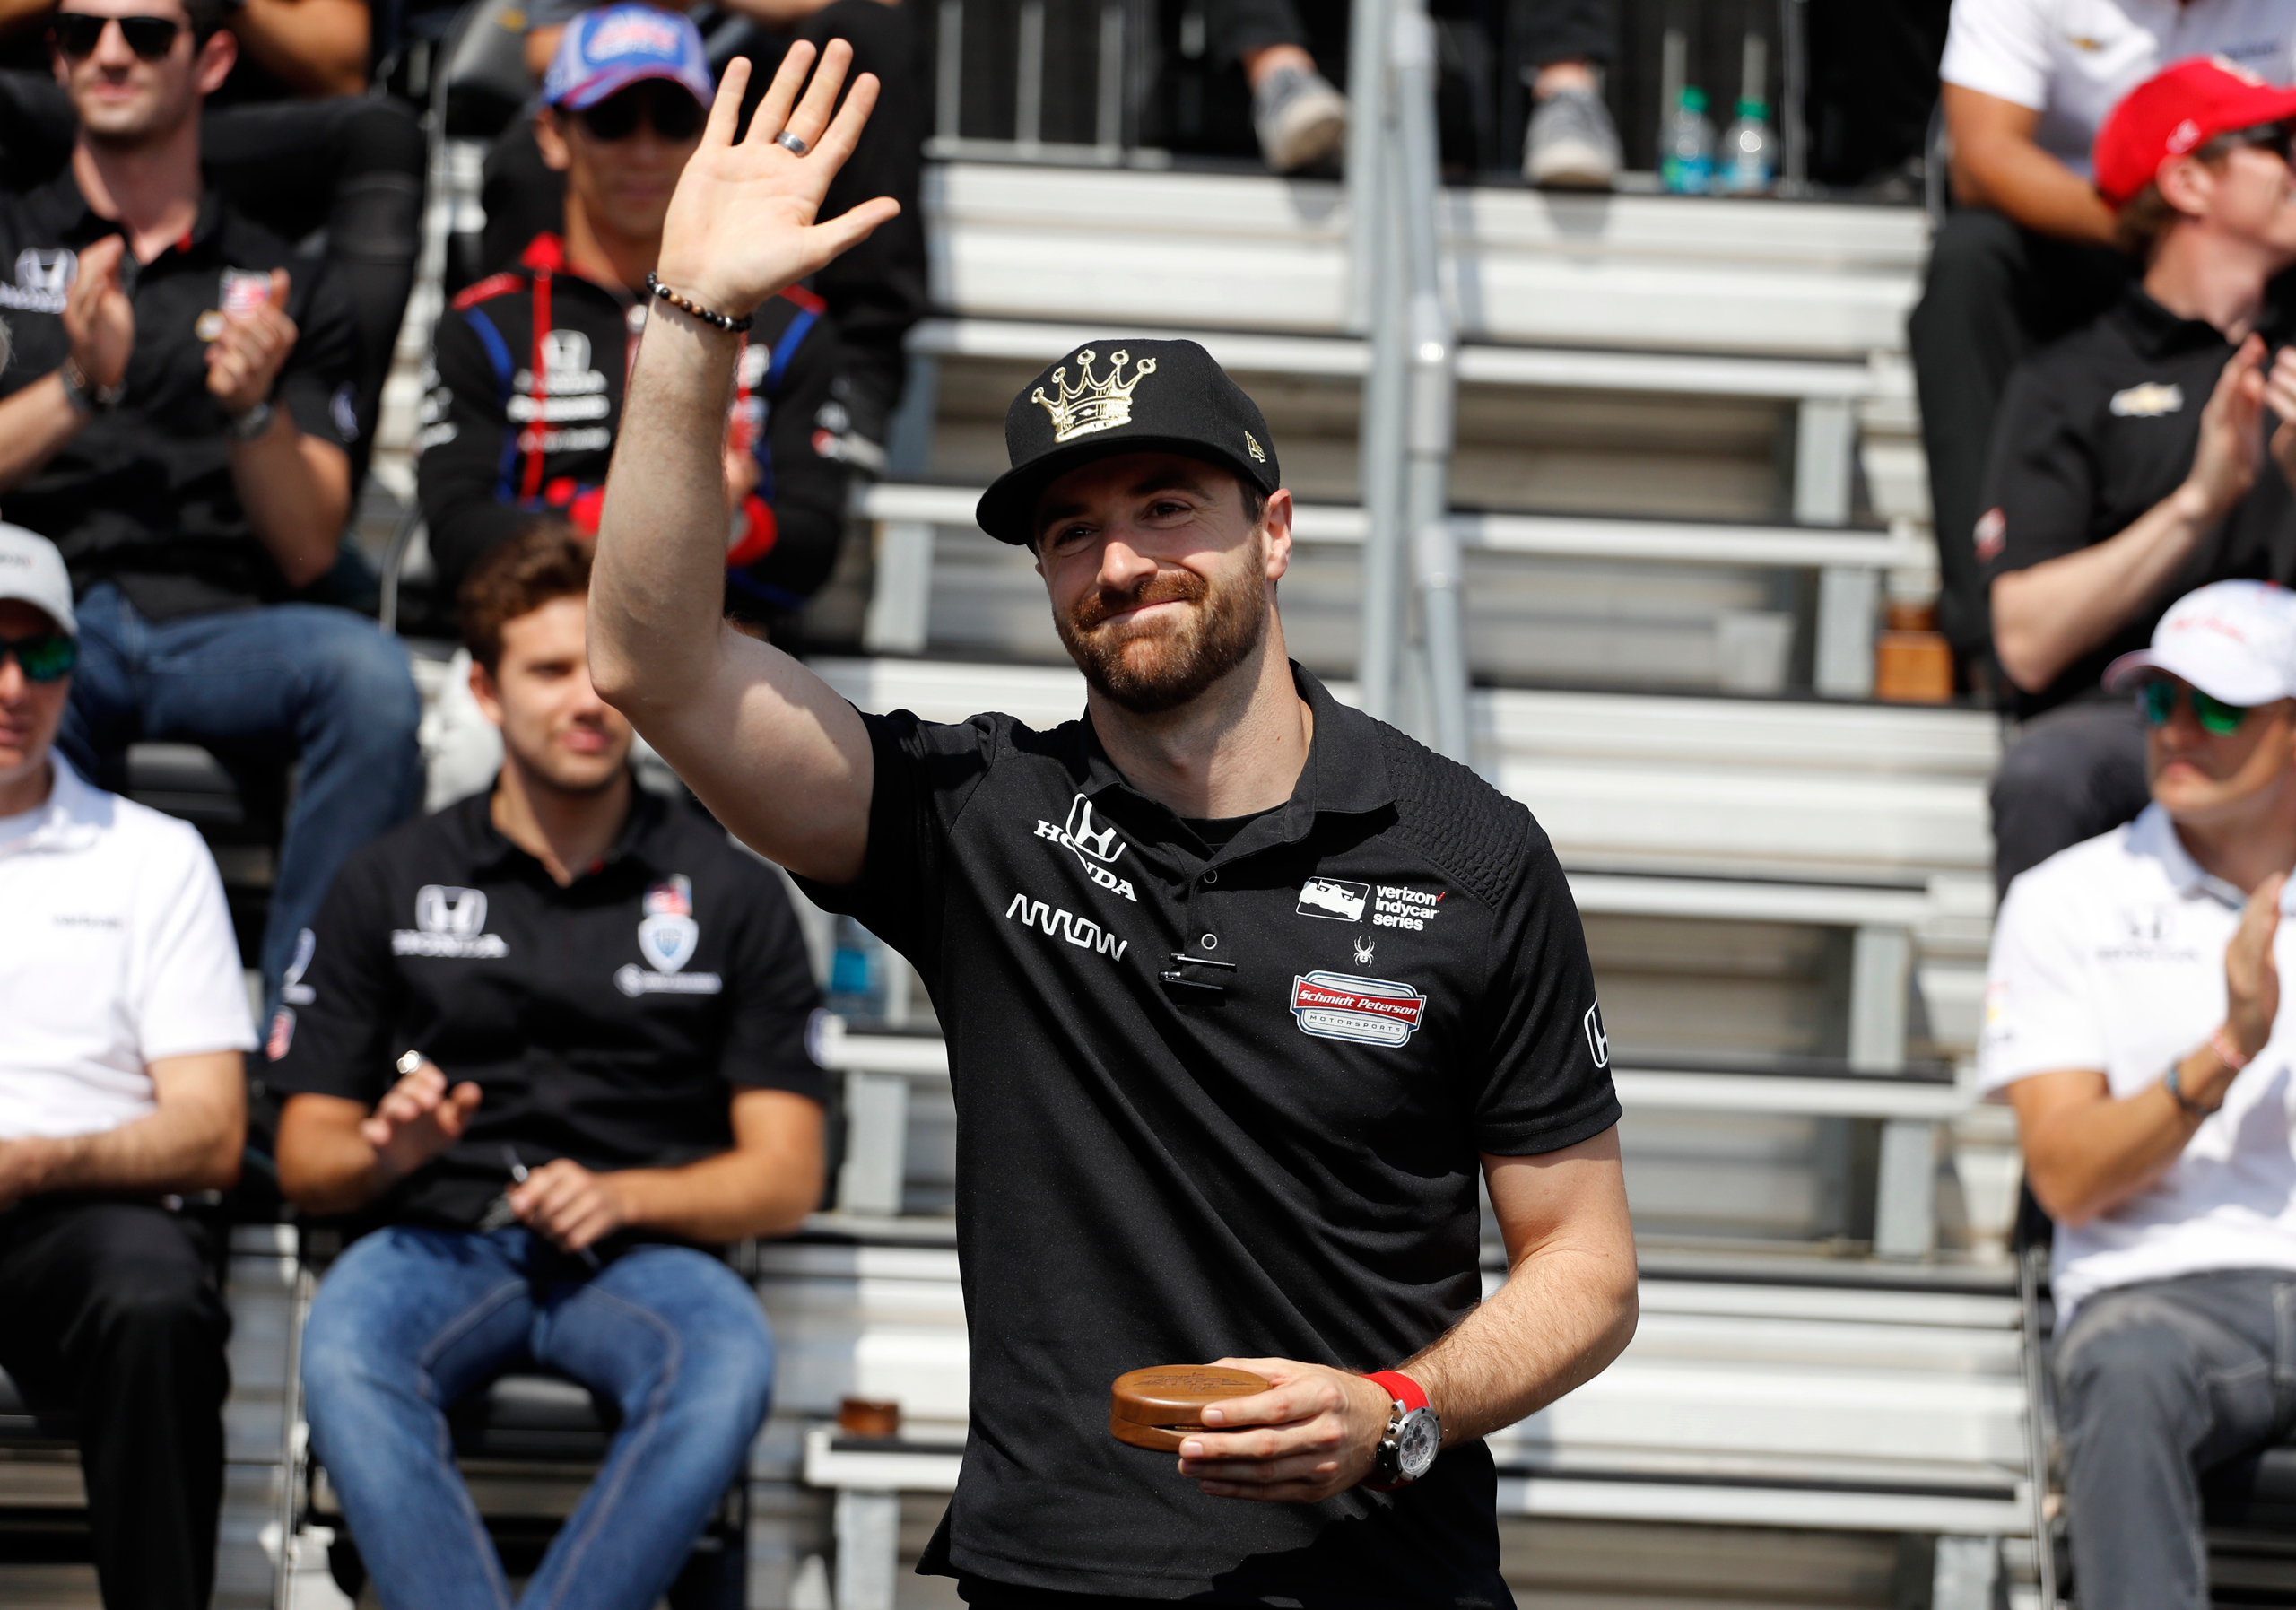 Pole sitter James Hinchcliffe, of Canada, waves to fans during the drivers meeting for the Indianapolis 500 auto race at Indianapolis Motor Speedway in Indianapolis on May 28, 2016.